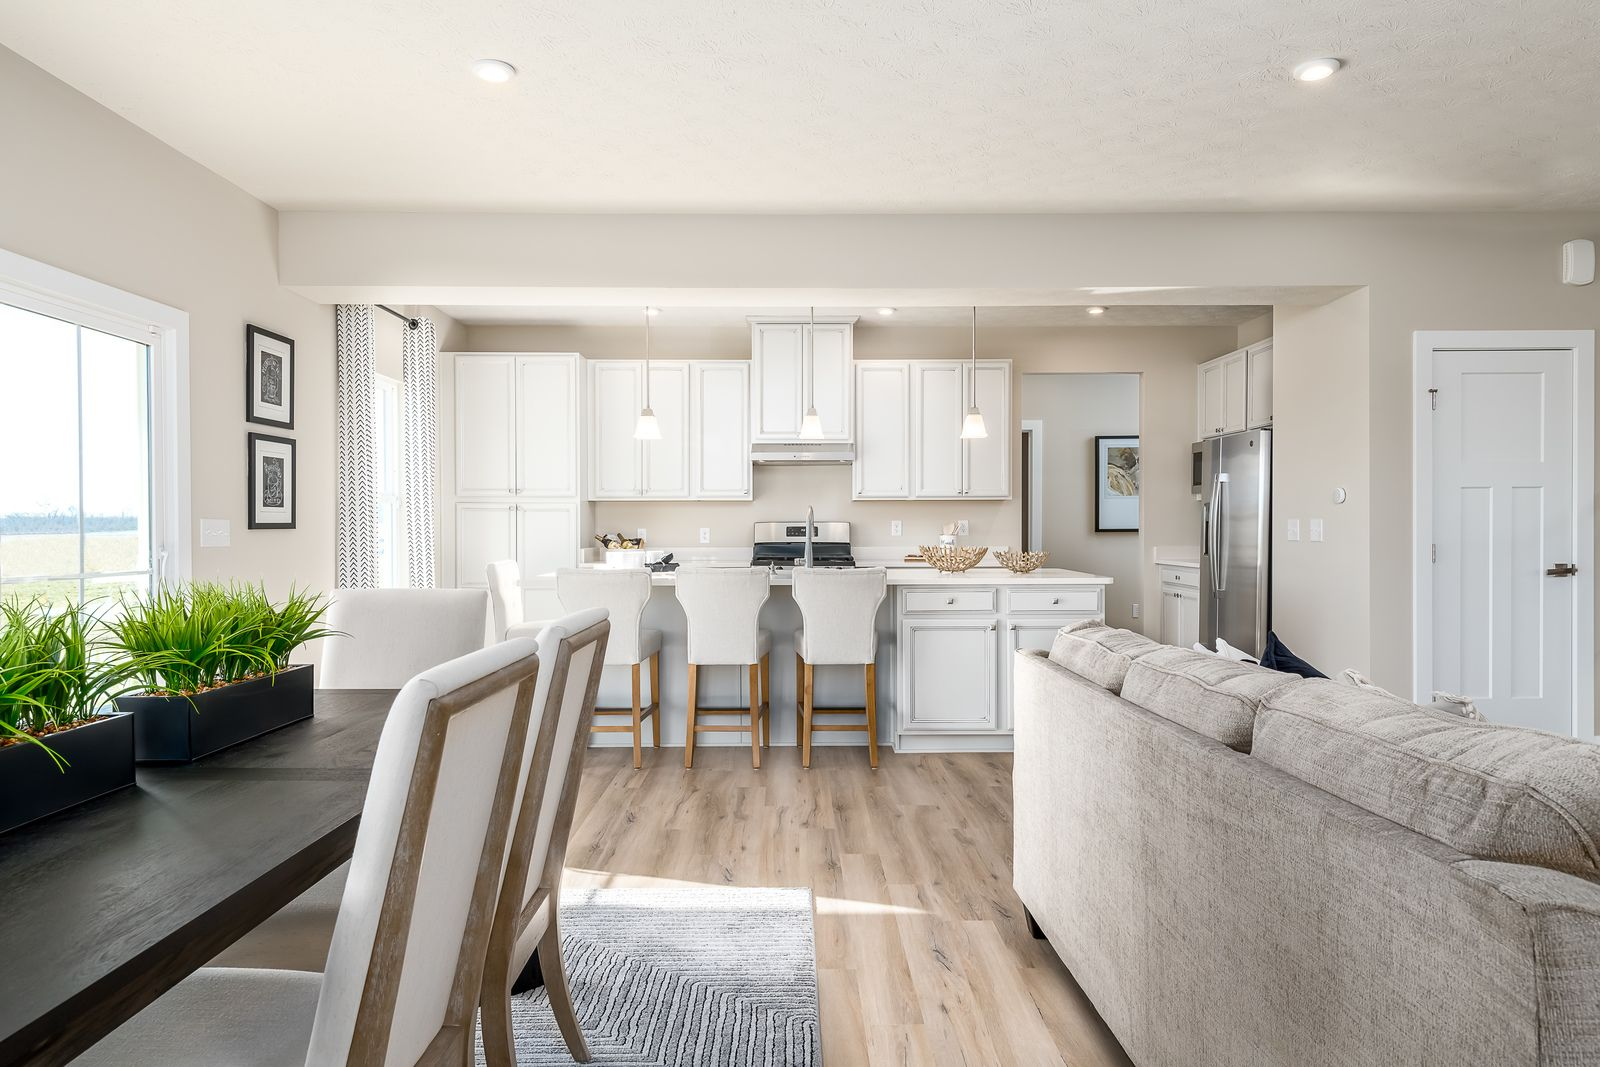 Kitchen featured in the Hudson By Ryan Homes in Ocean City, MD